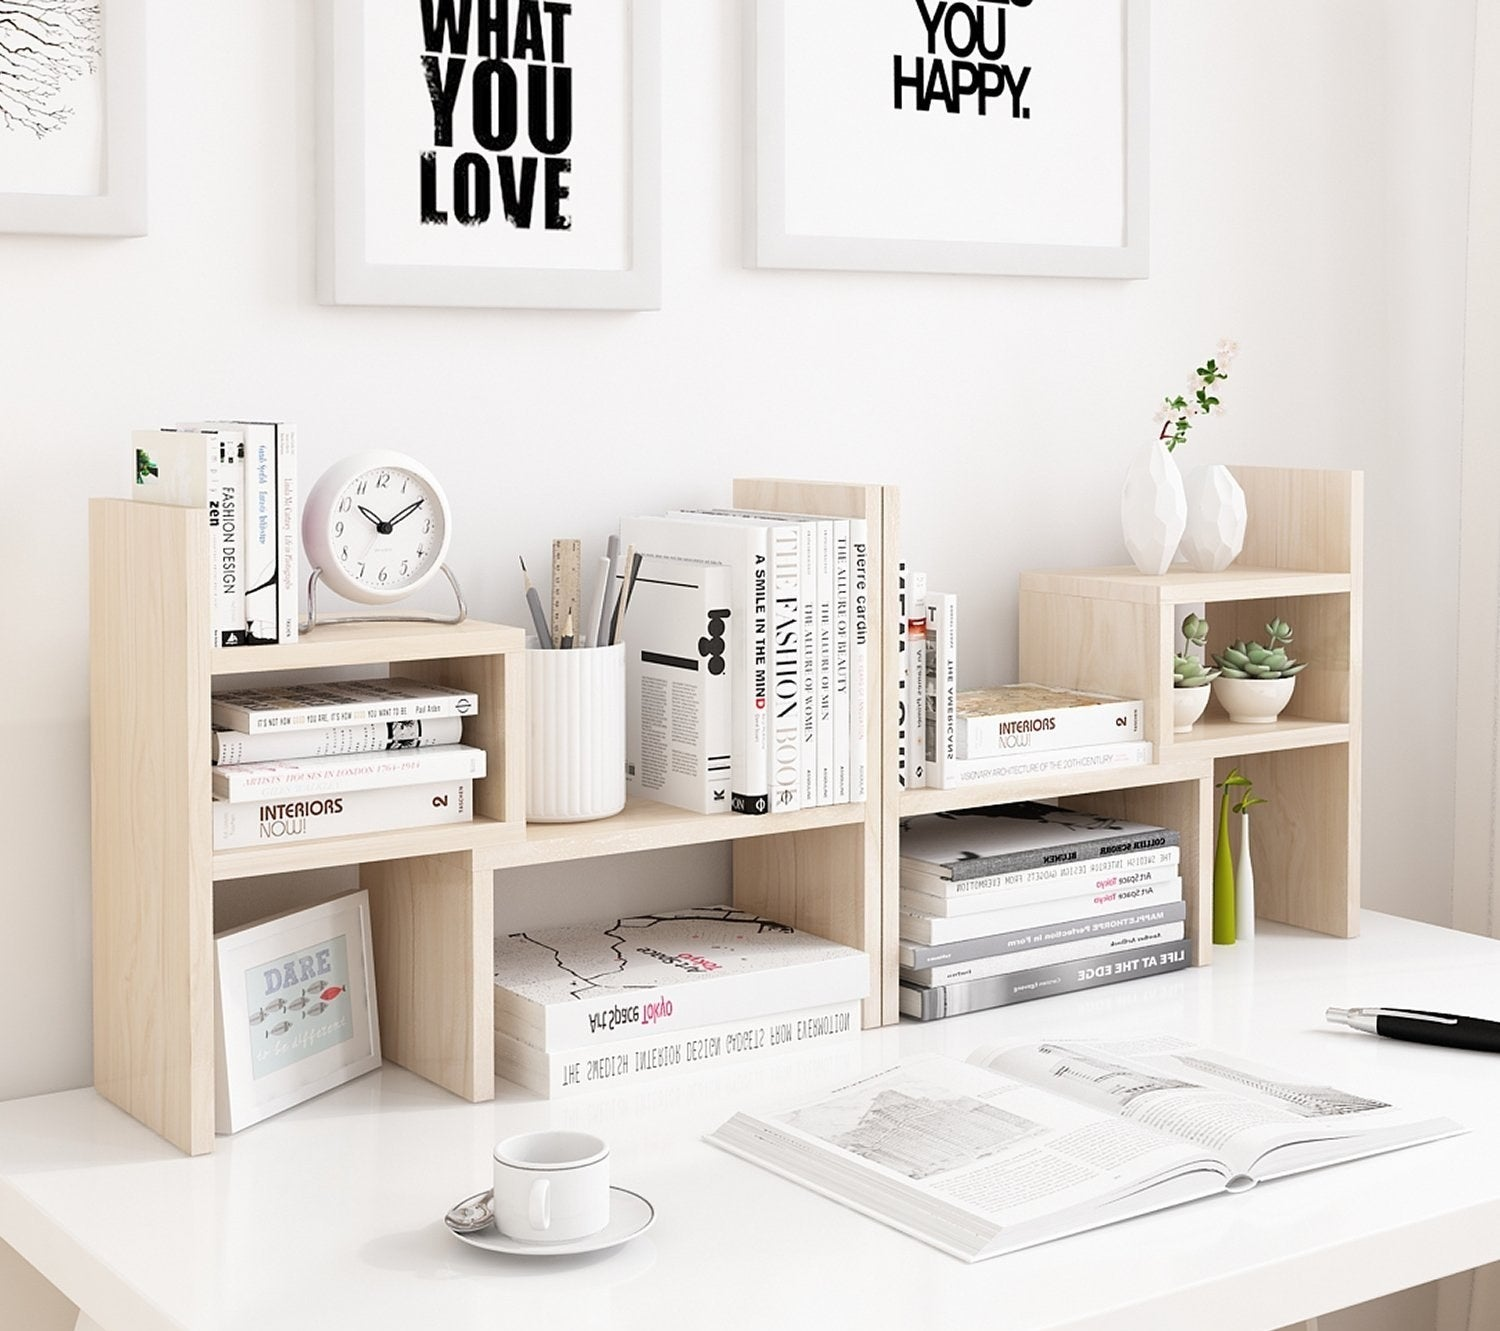 28 Actually Cute Storage Ideas For Every Room In Your Home